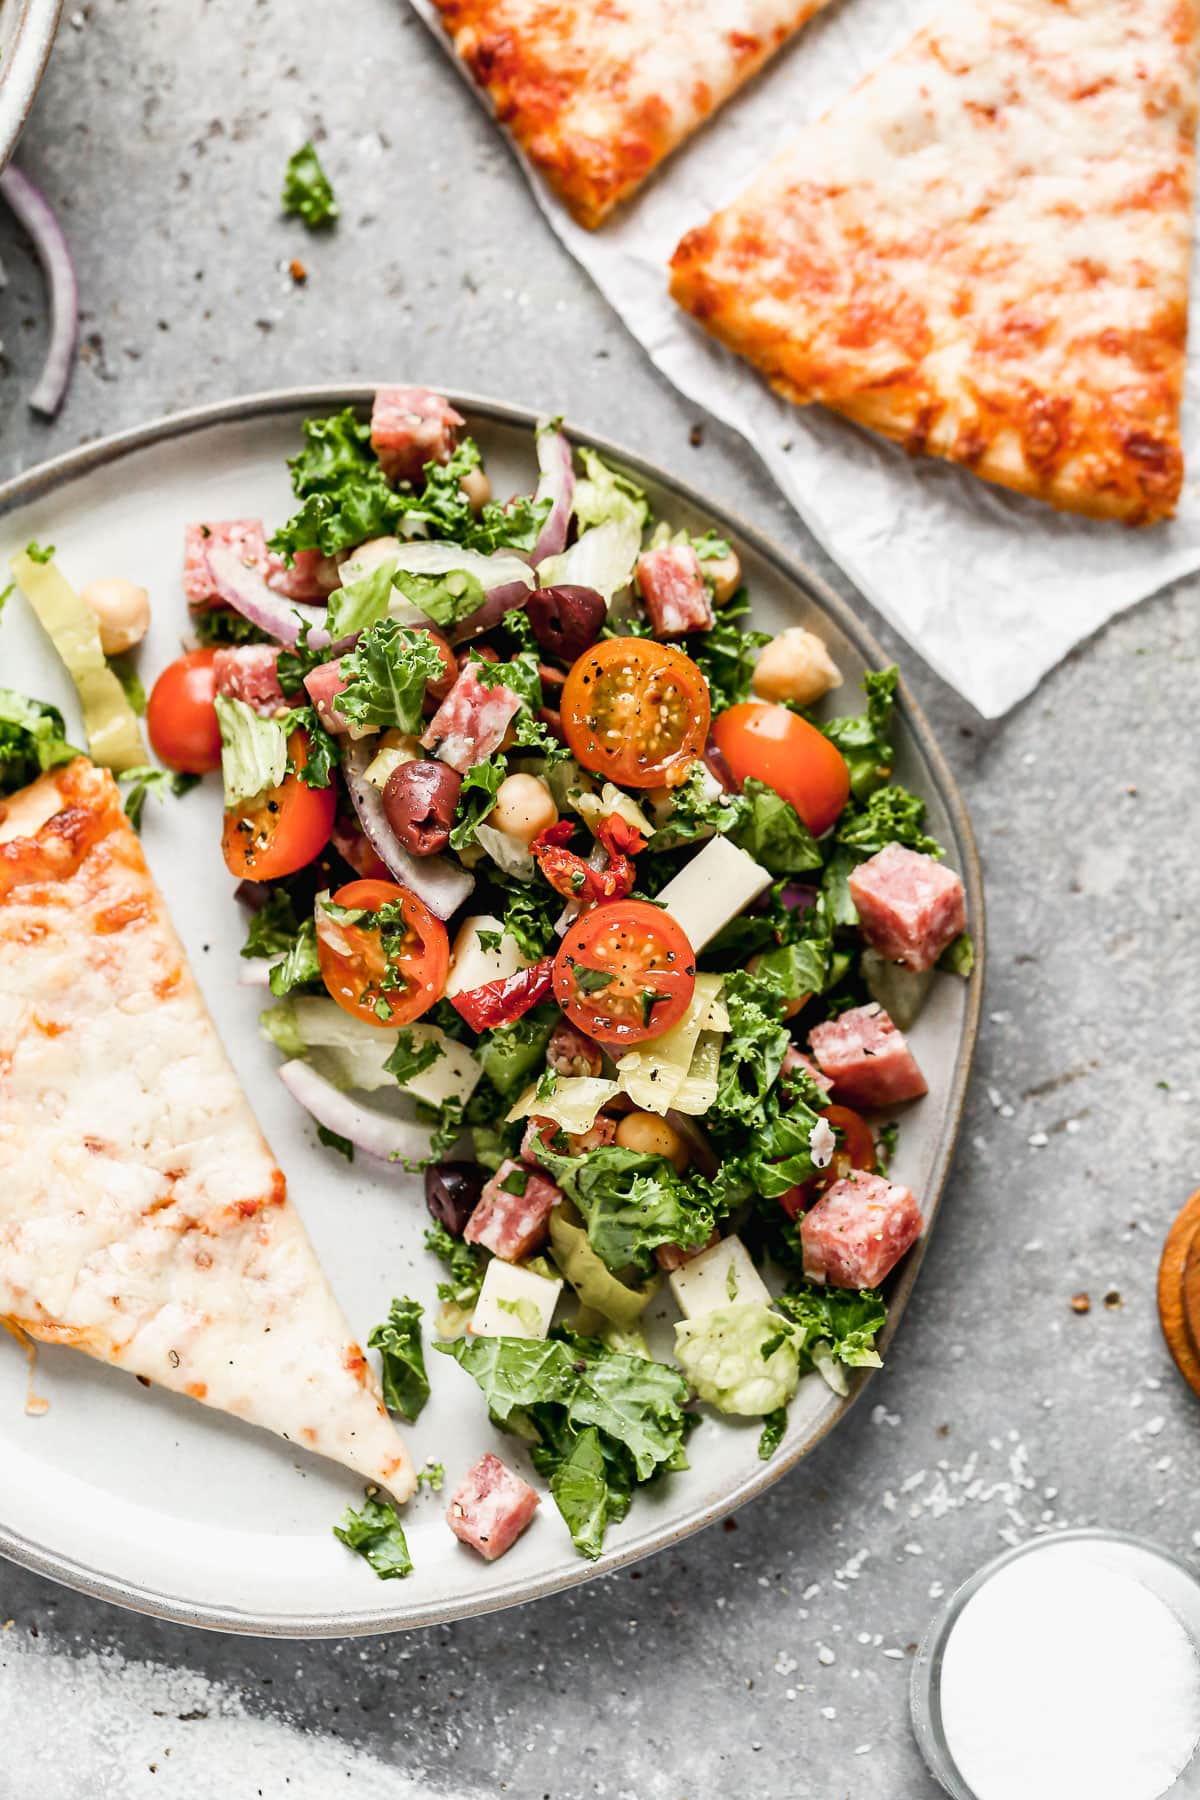 Pizza and Italian chopped salad on a plate